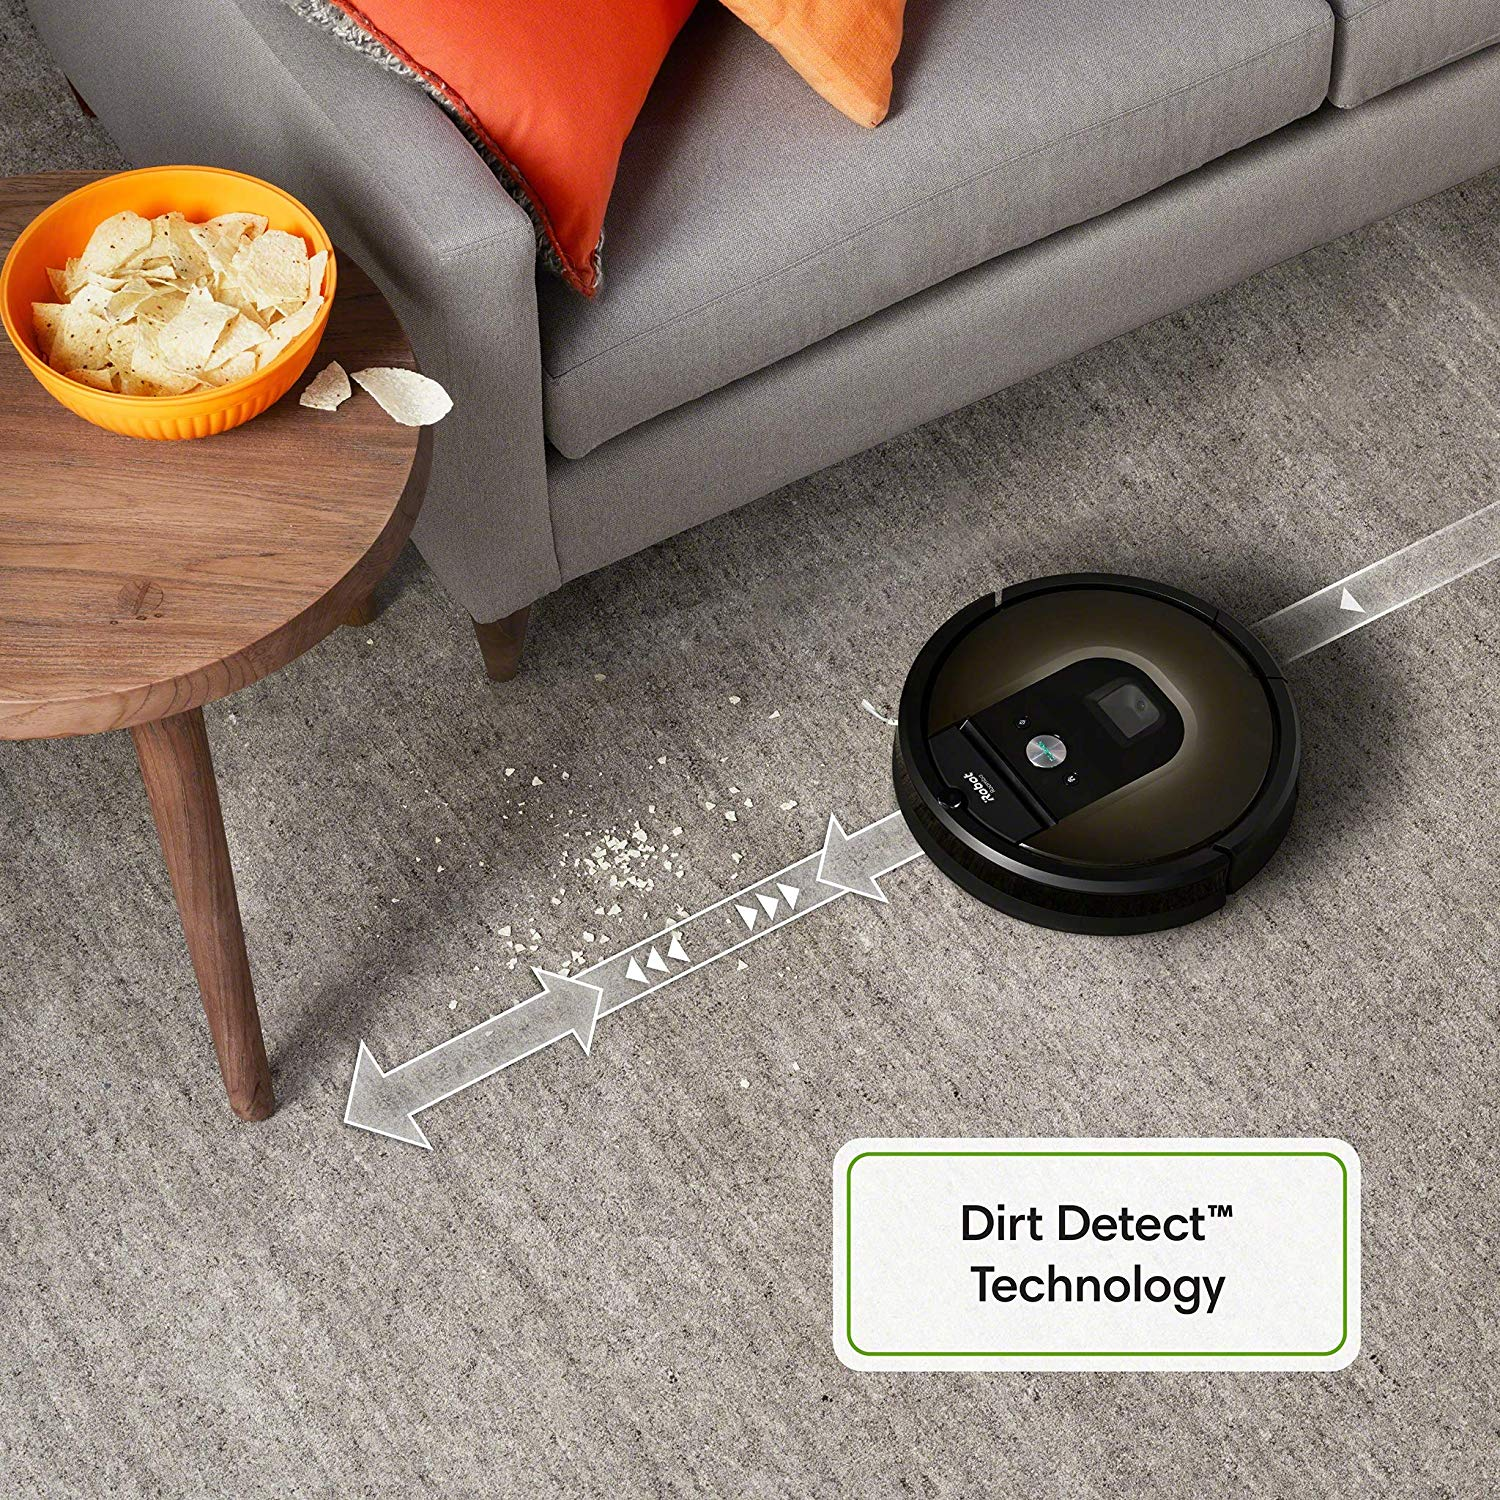 The iRobot vacuum cleaner has high dirt detection technology for hardwood floors and pets hairs